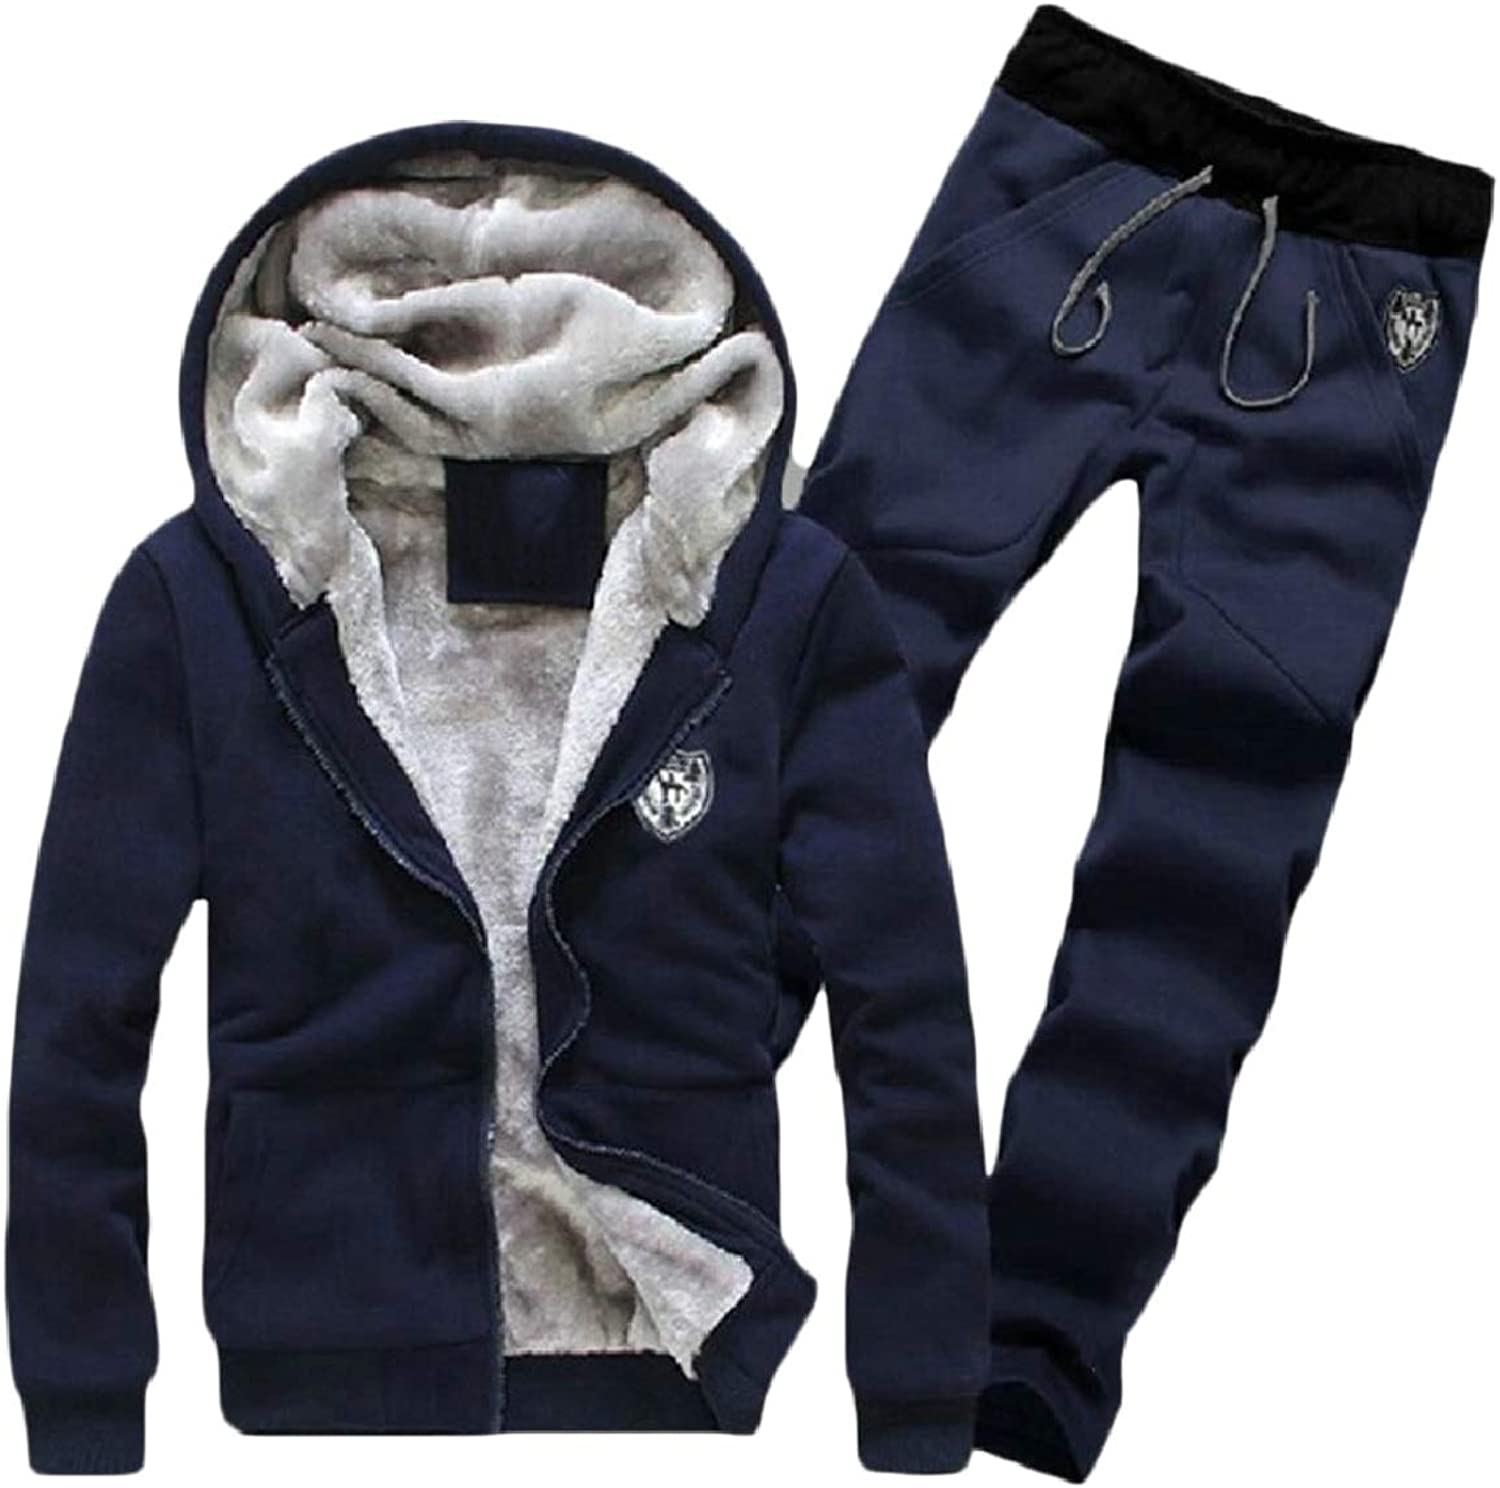 Xswsy XG-CA Men's Fleece Hoodies Solid Solid Solid color Thicken Tracksuit Set 2 Piece Set a0ca83